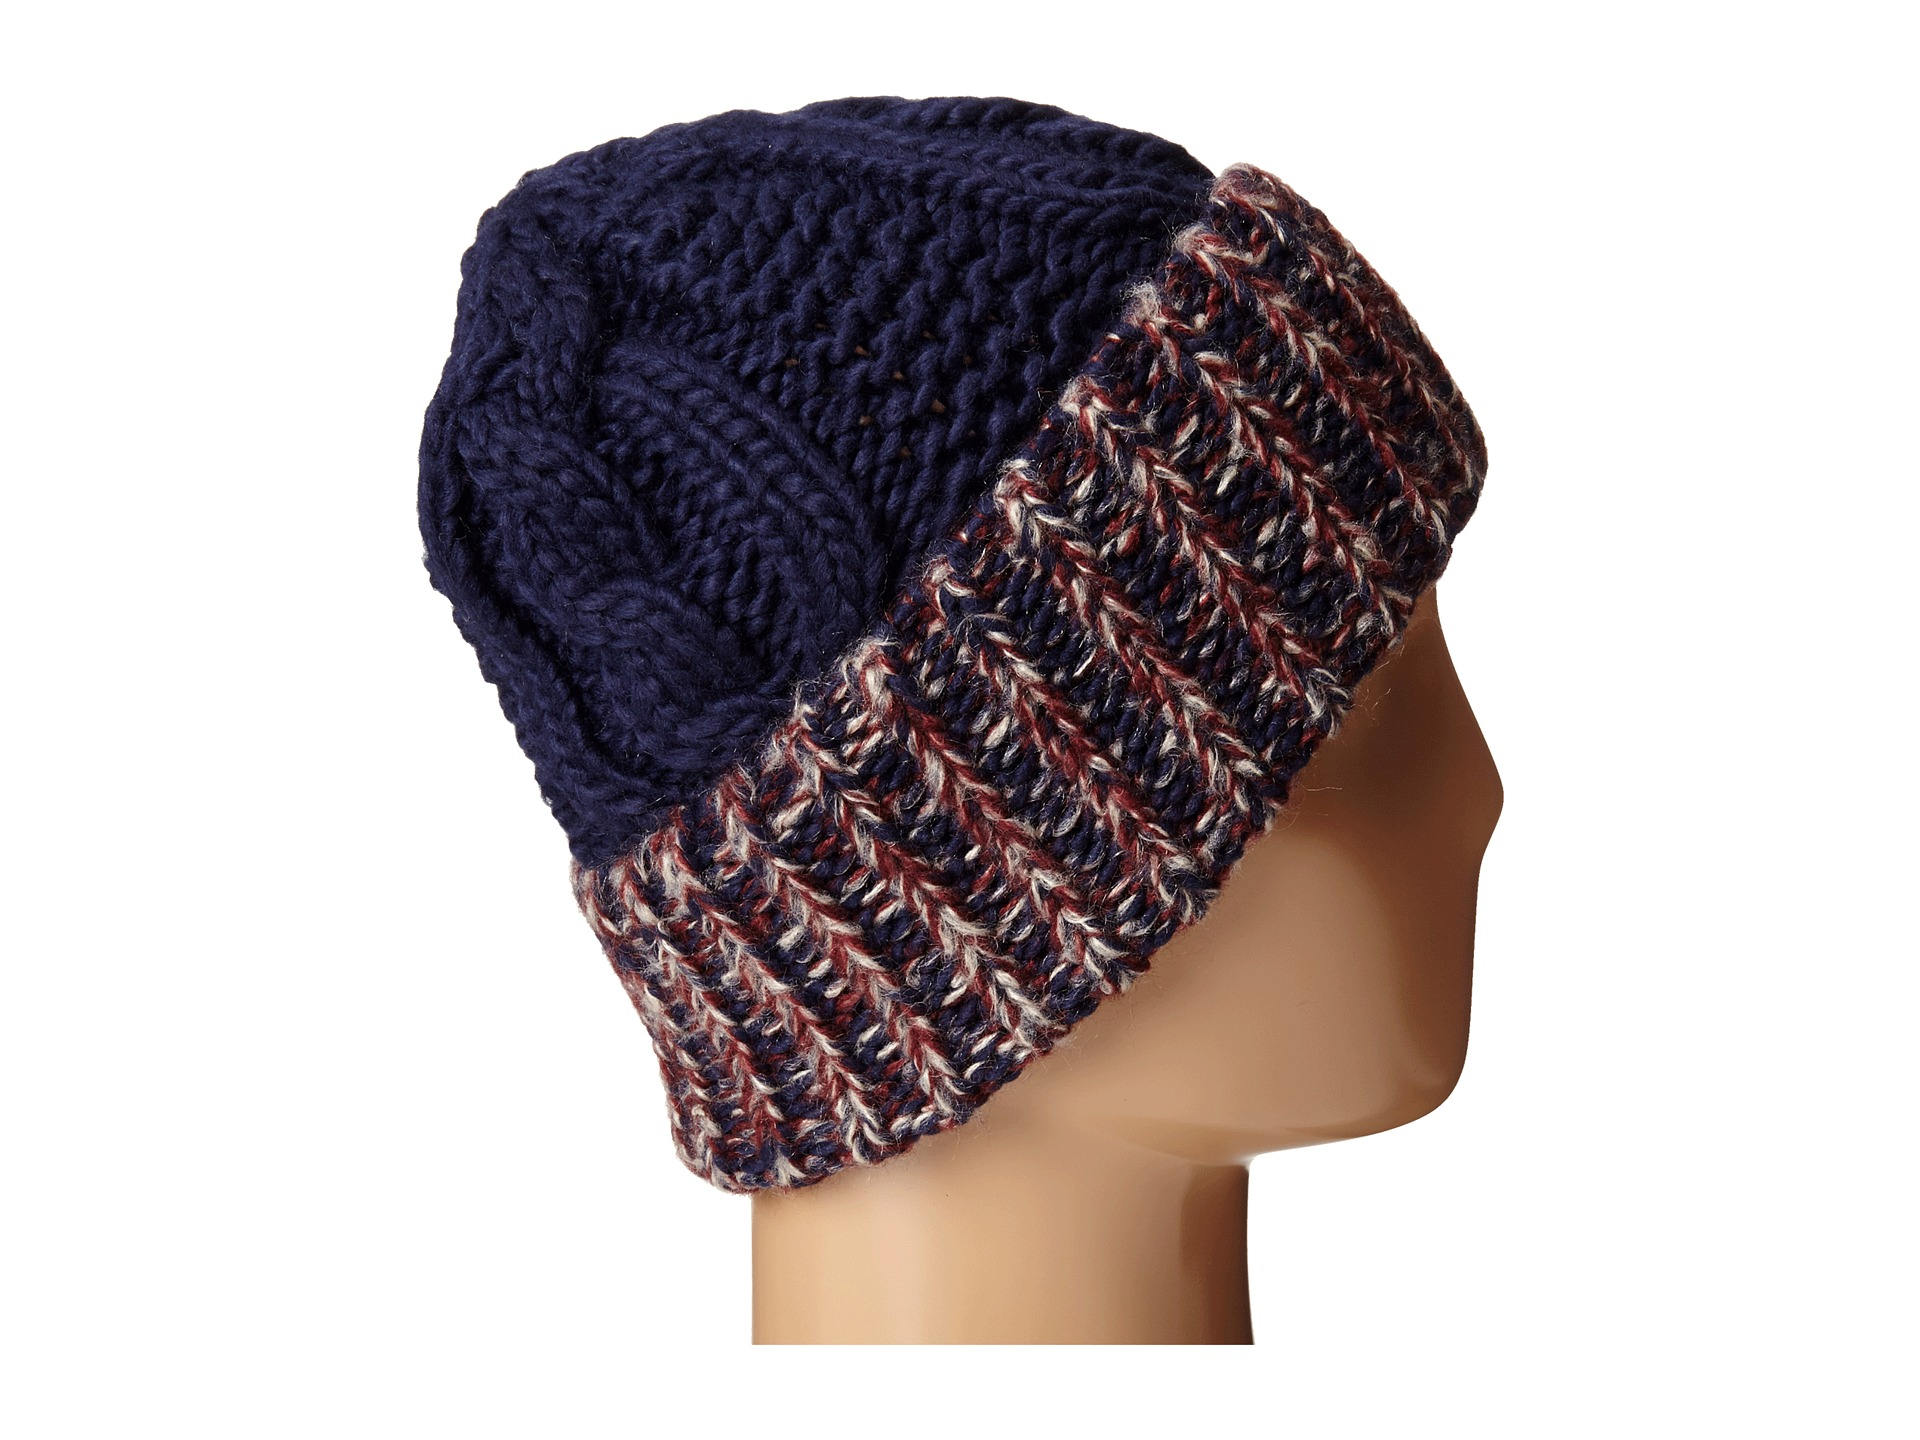 San diego hat company Knh3378 Oversized Cable Knit Beanie With Marled Yarn Cu...